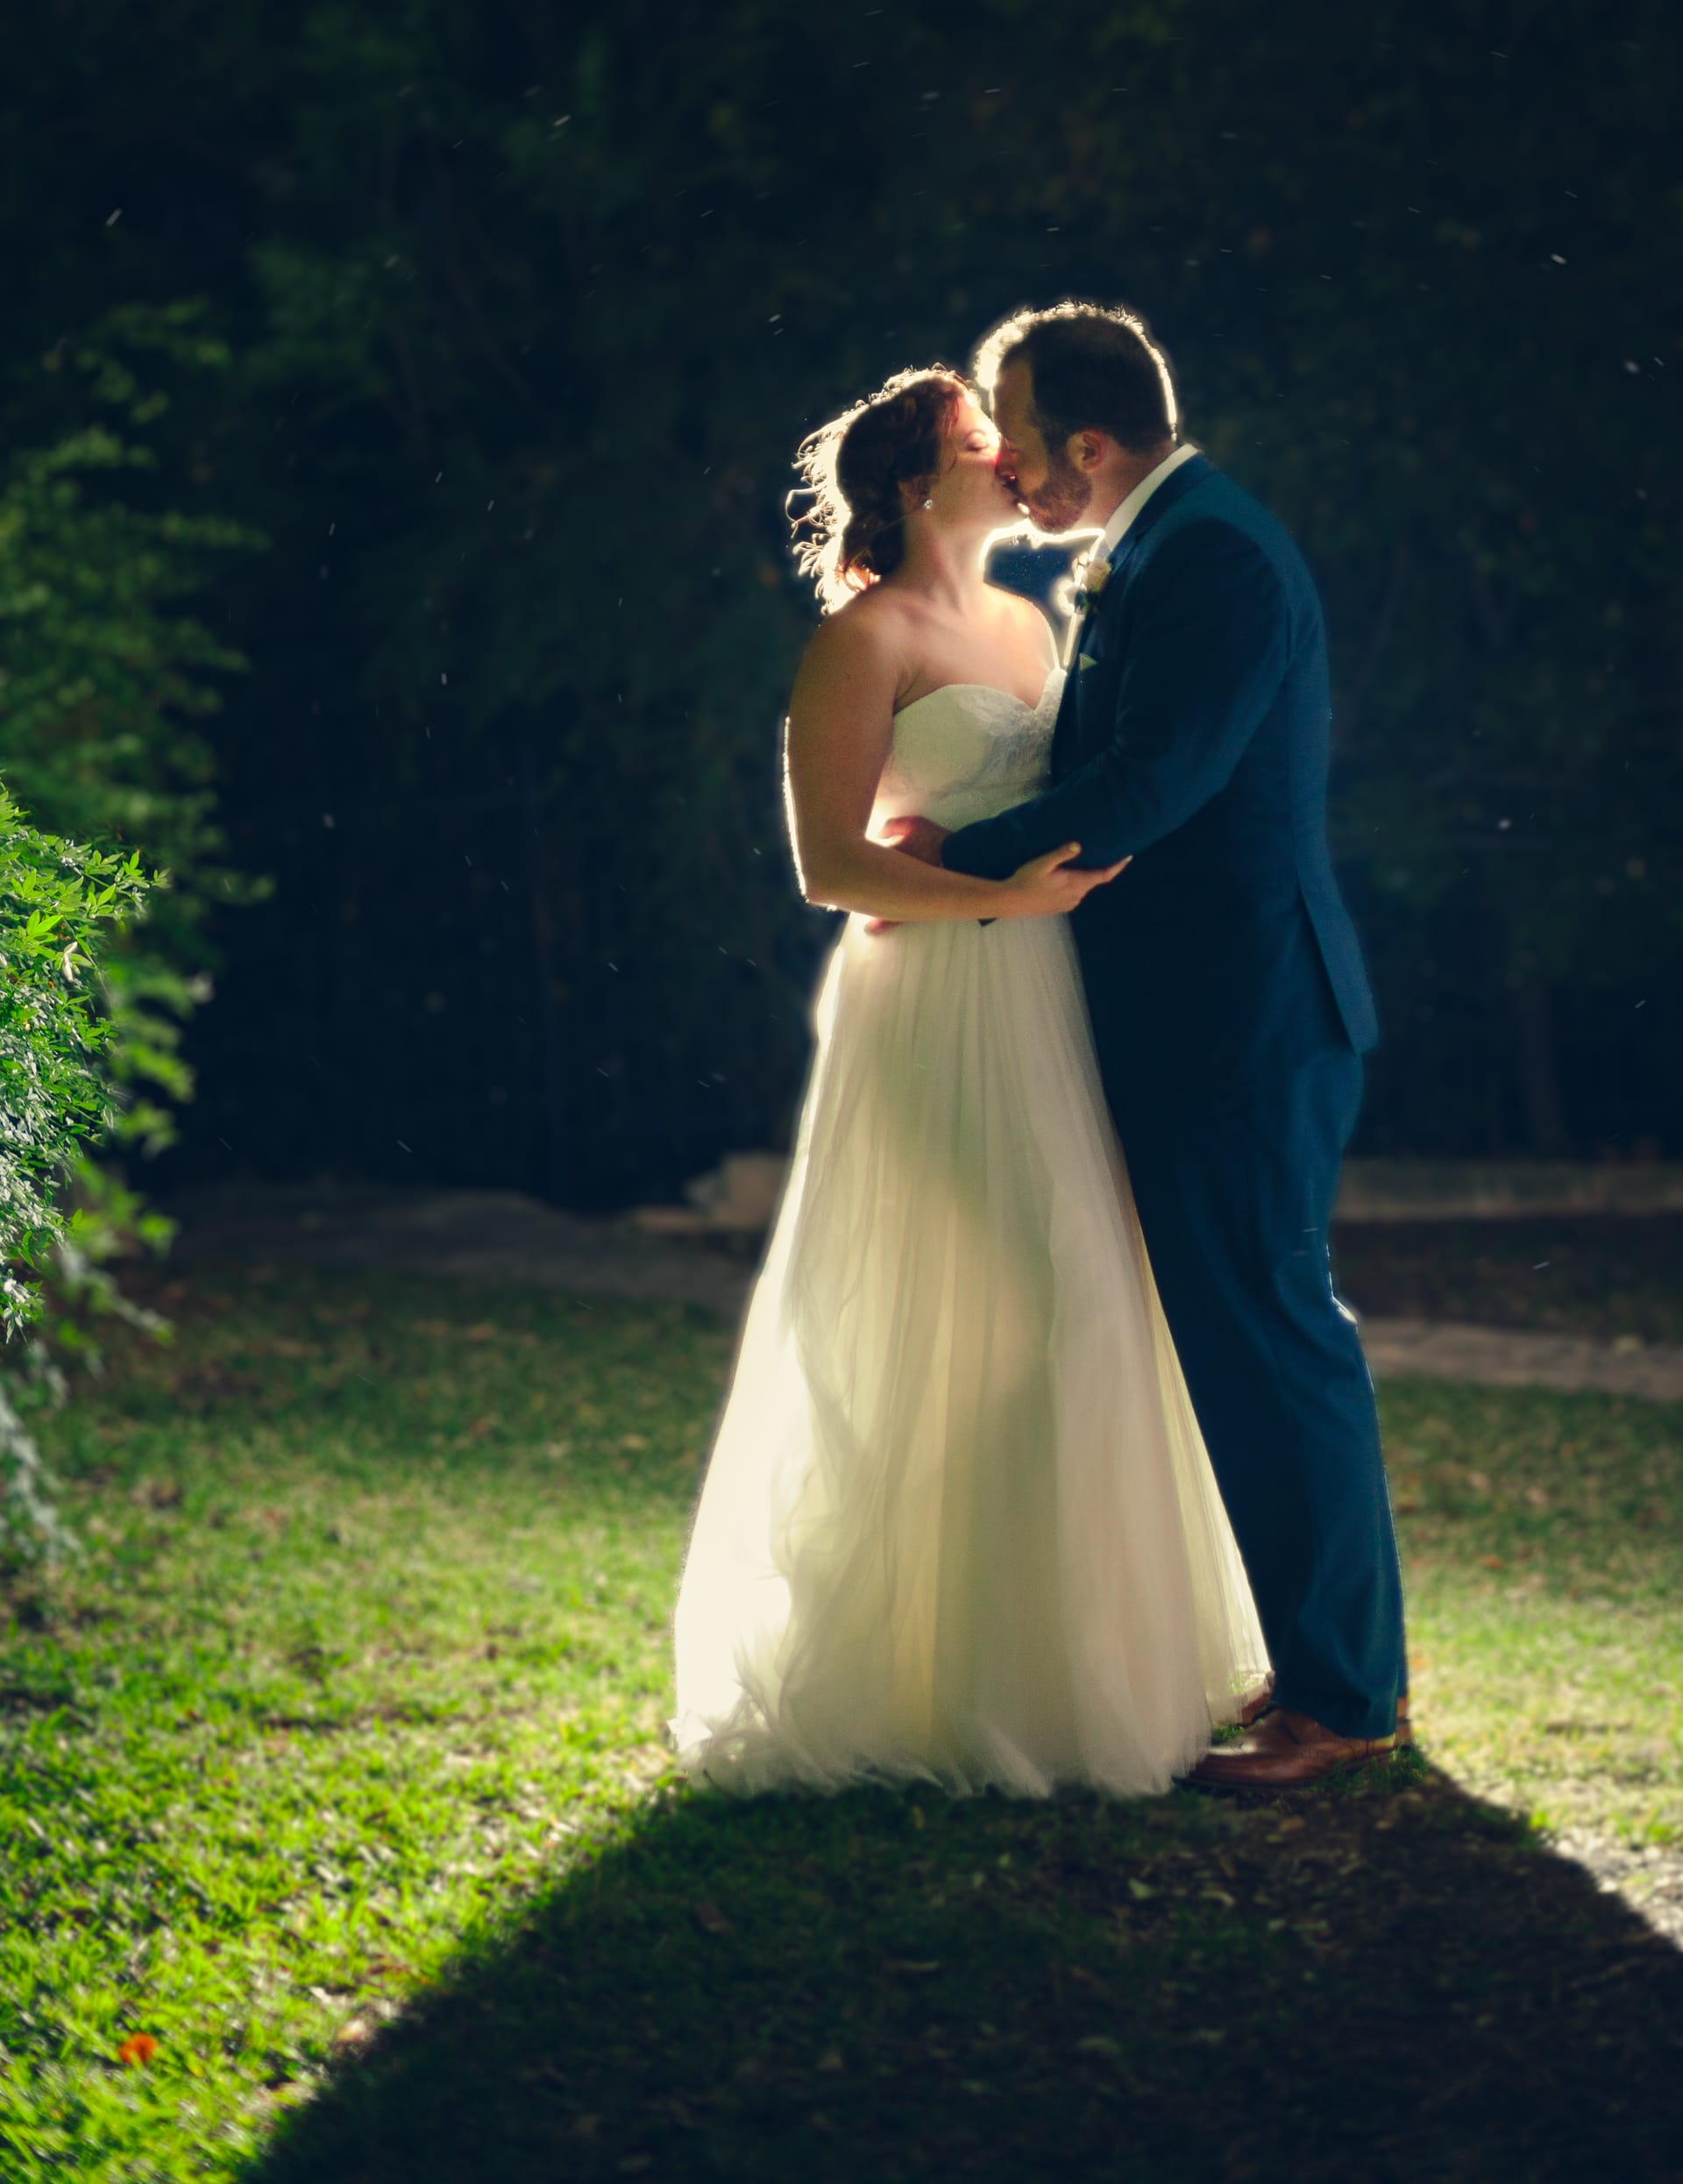 beautiful backlit wedding photo